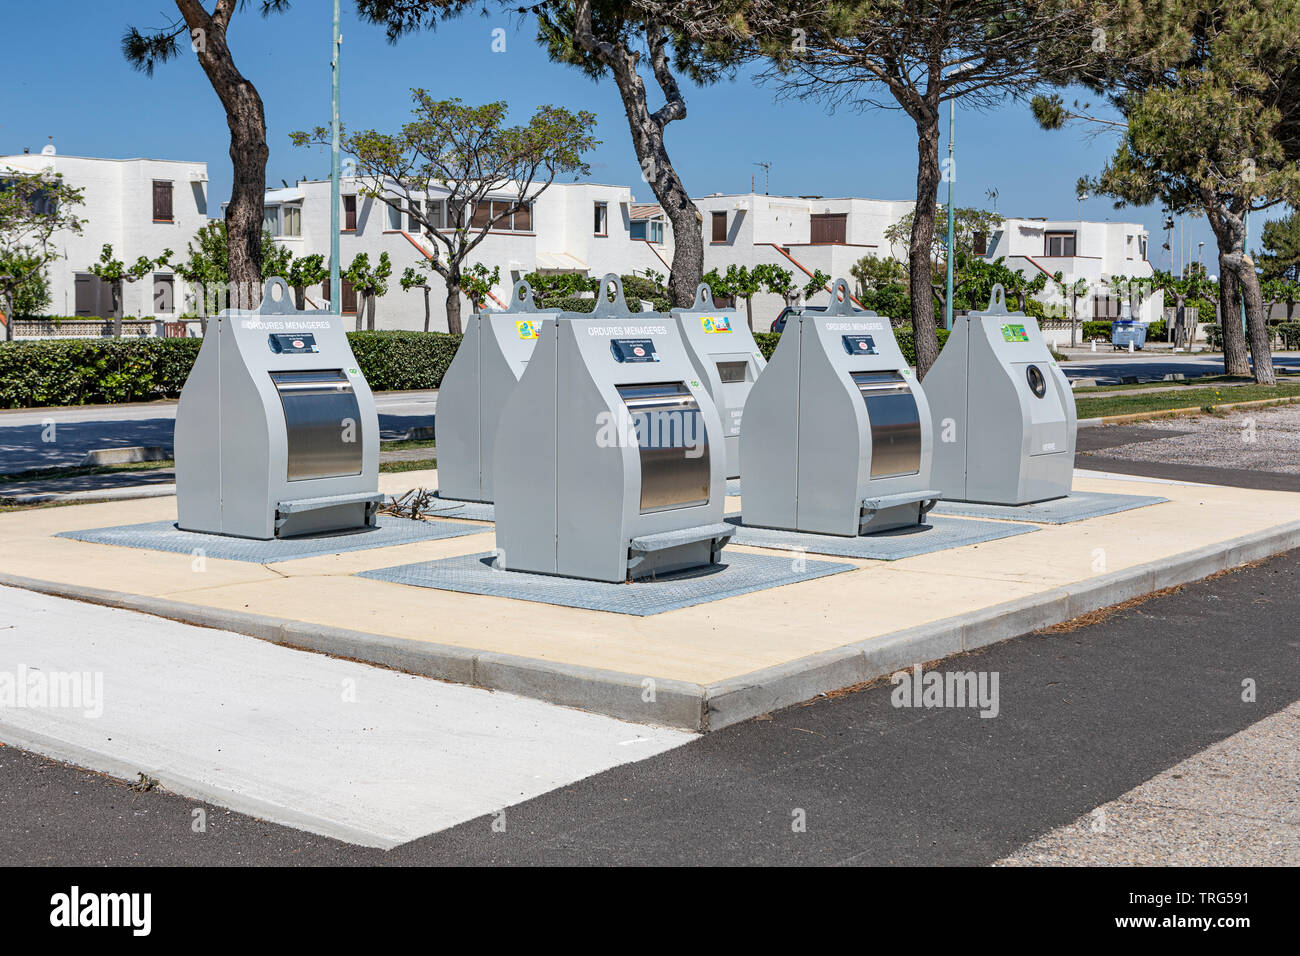 Refuse and recycling bins in Le Barcares, South of France - Stock Image